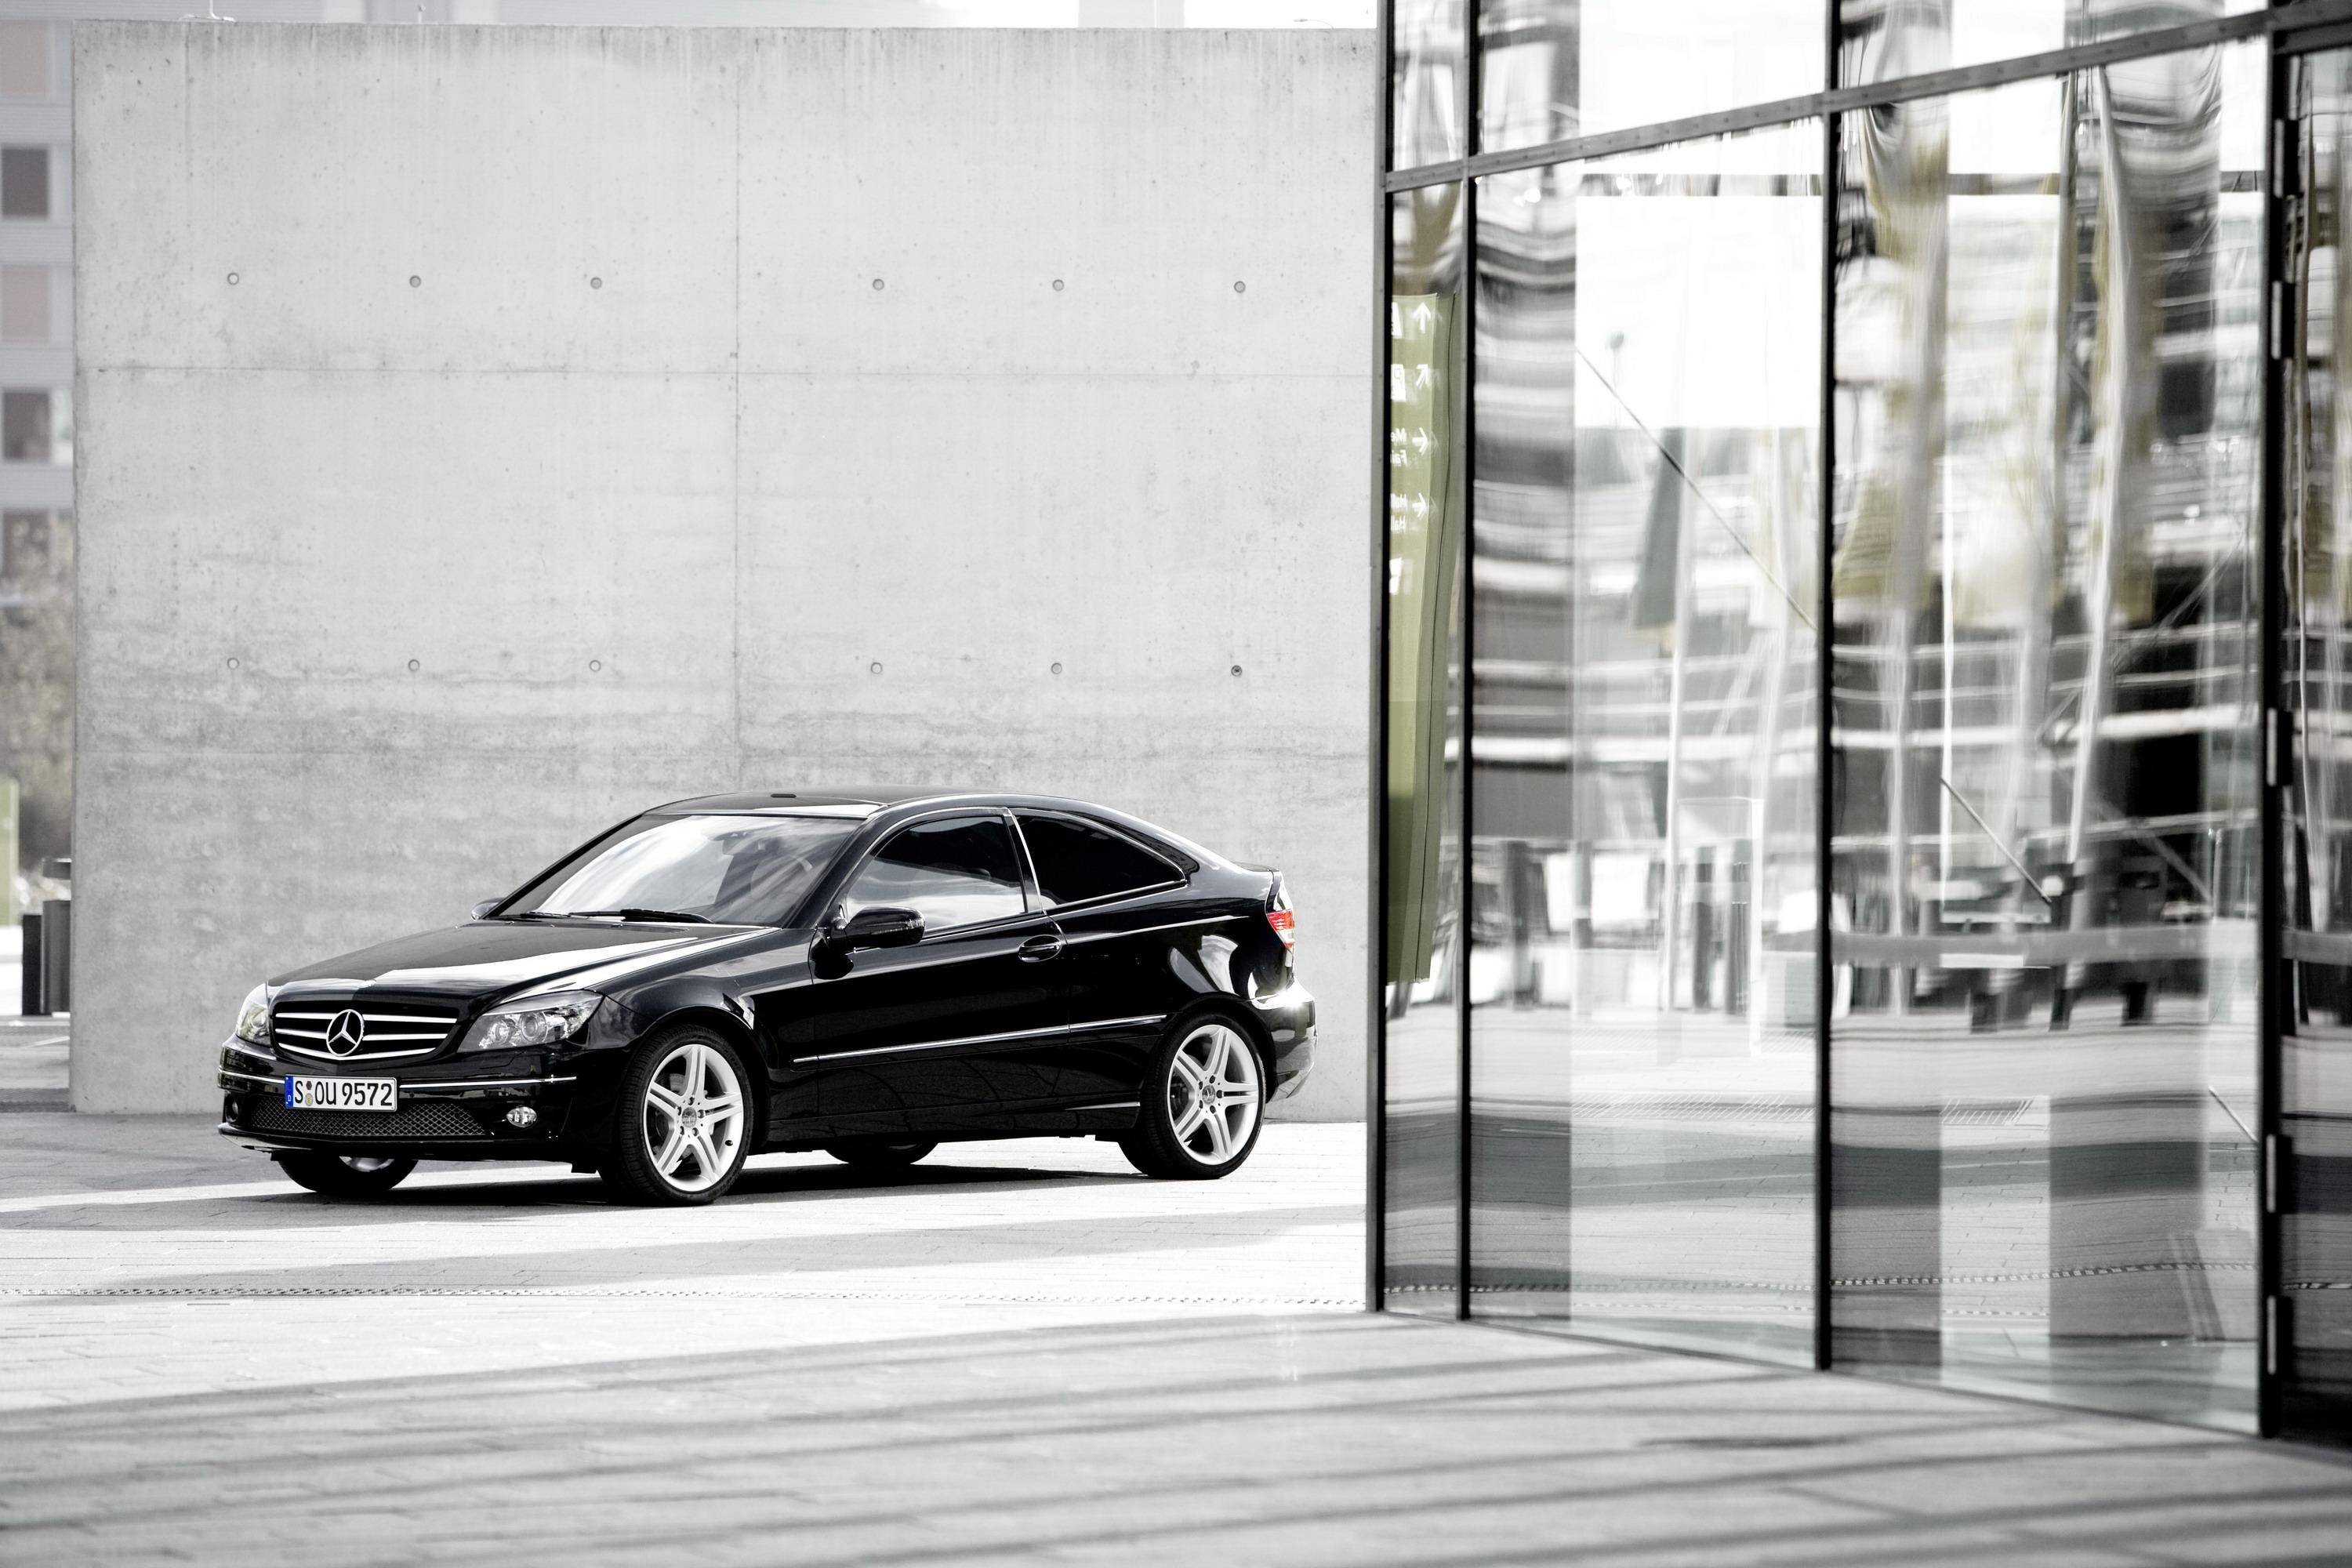 Wallpaper Of The Day: 2009 Mercedes CLC-Class | Top Speed